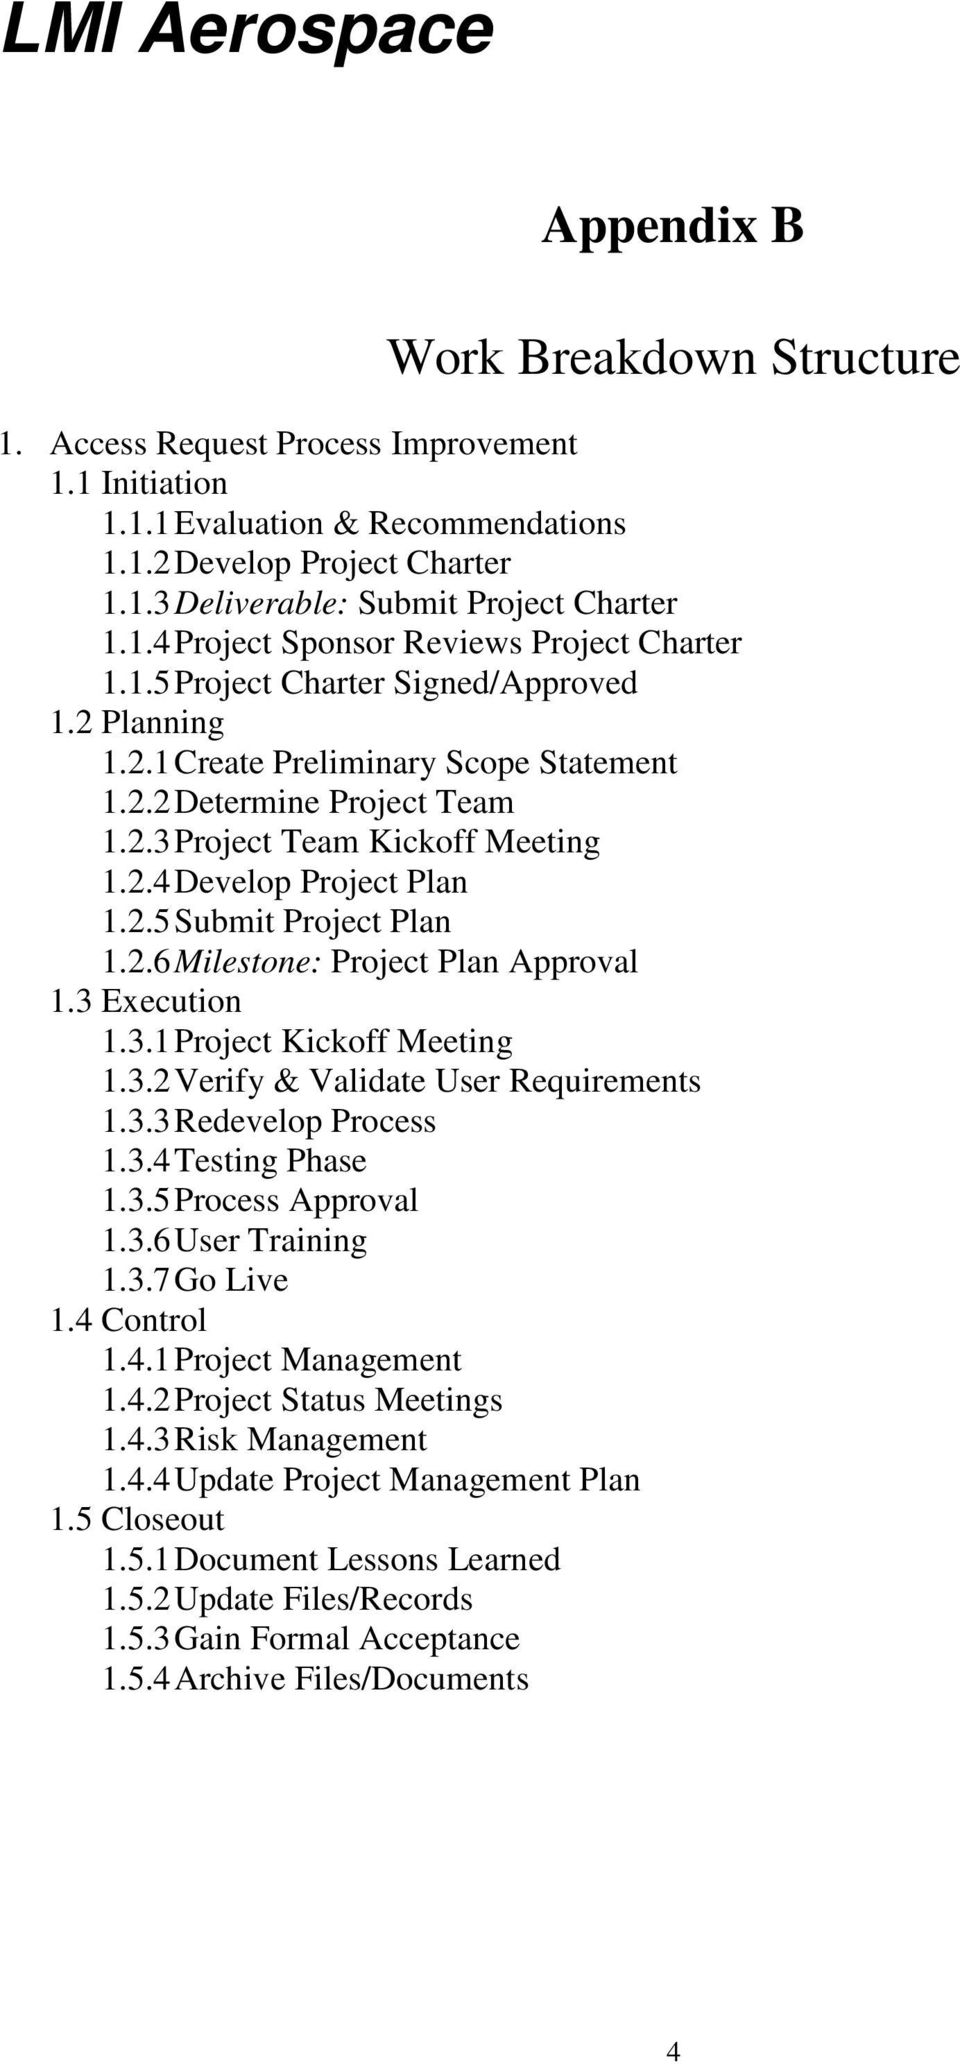 2.6 Milestone: Project Plan Approval 1.3 Execution 1.3.1 Project Kickoff Meeting 1.3.2 Verify & Validate User Requirements 1.3.3 Redevelop Process 1.3.4 Testing Phase 1.3.5 Process Approval 1.3.6 User Training 1.